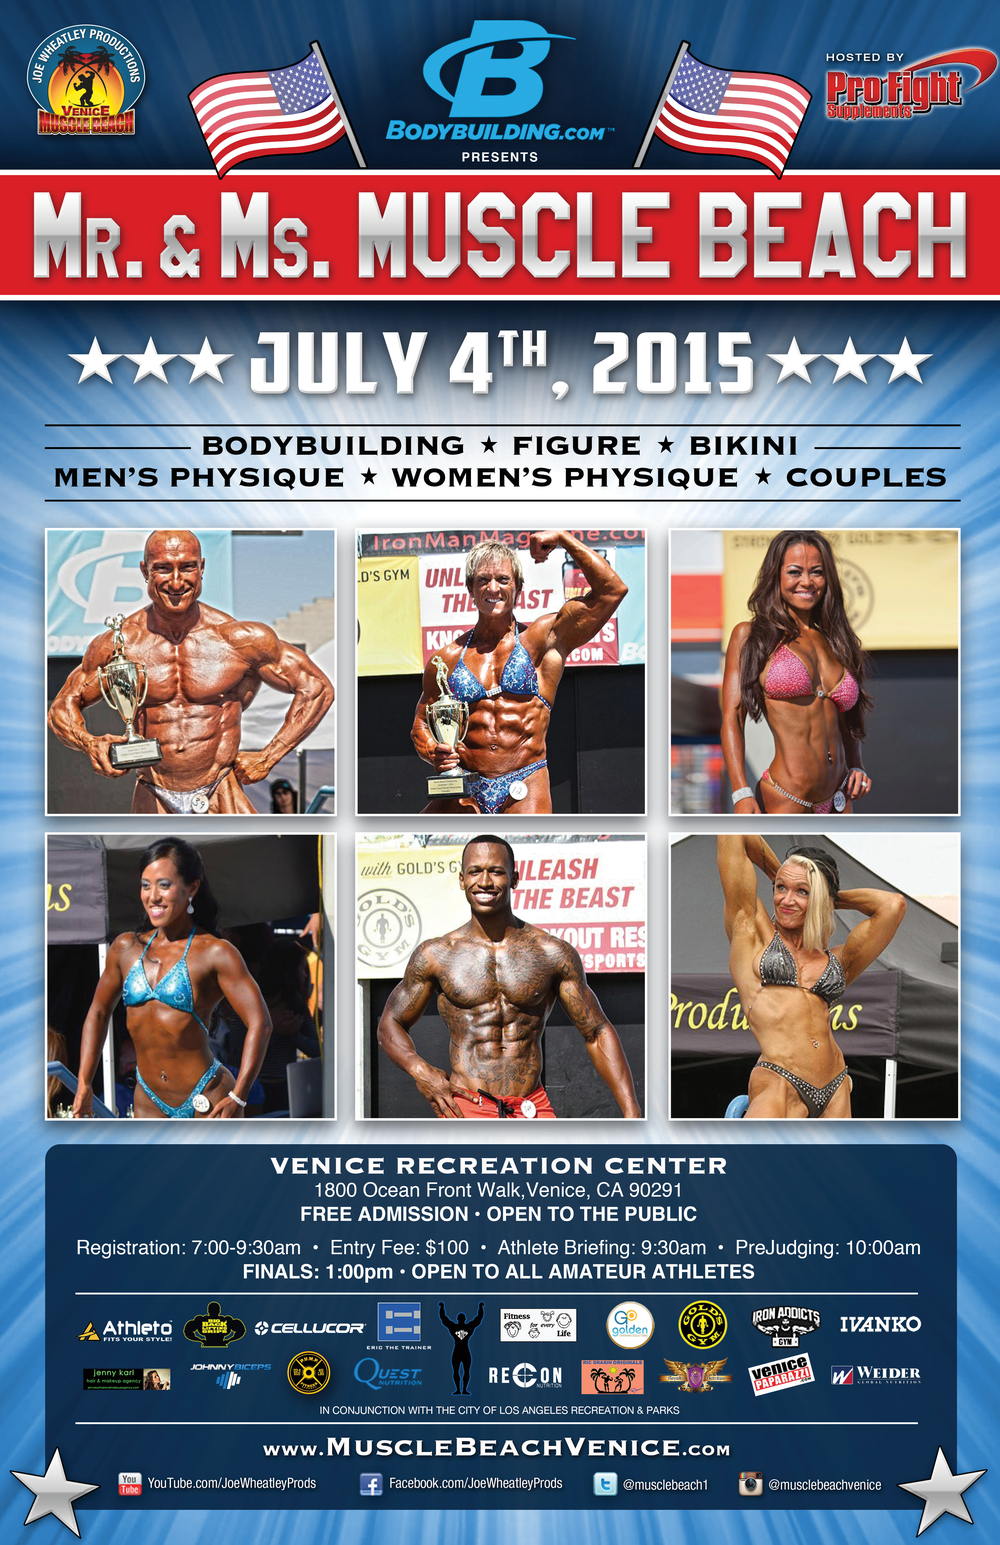 Mr. & Mrs. Muscle Beach - July 4th 2015